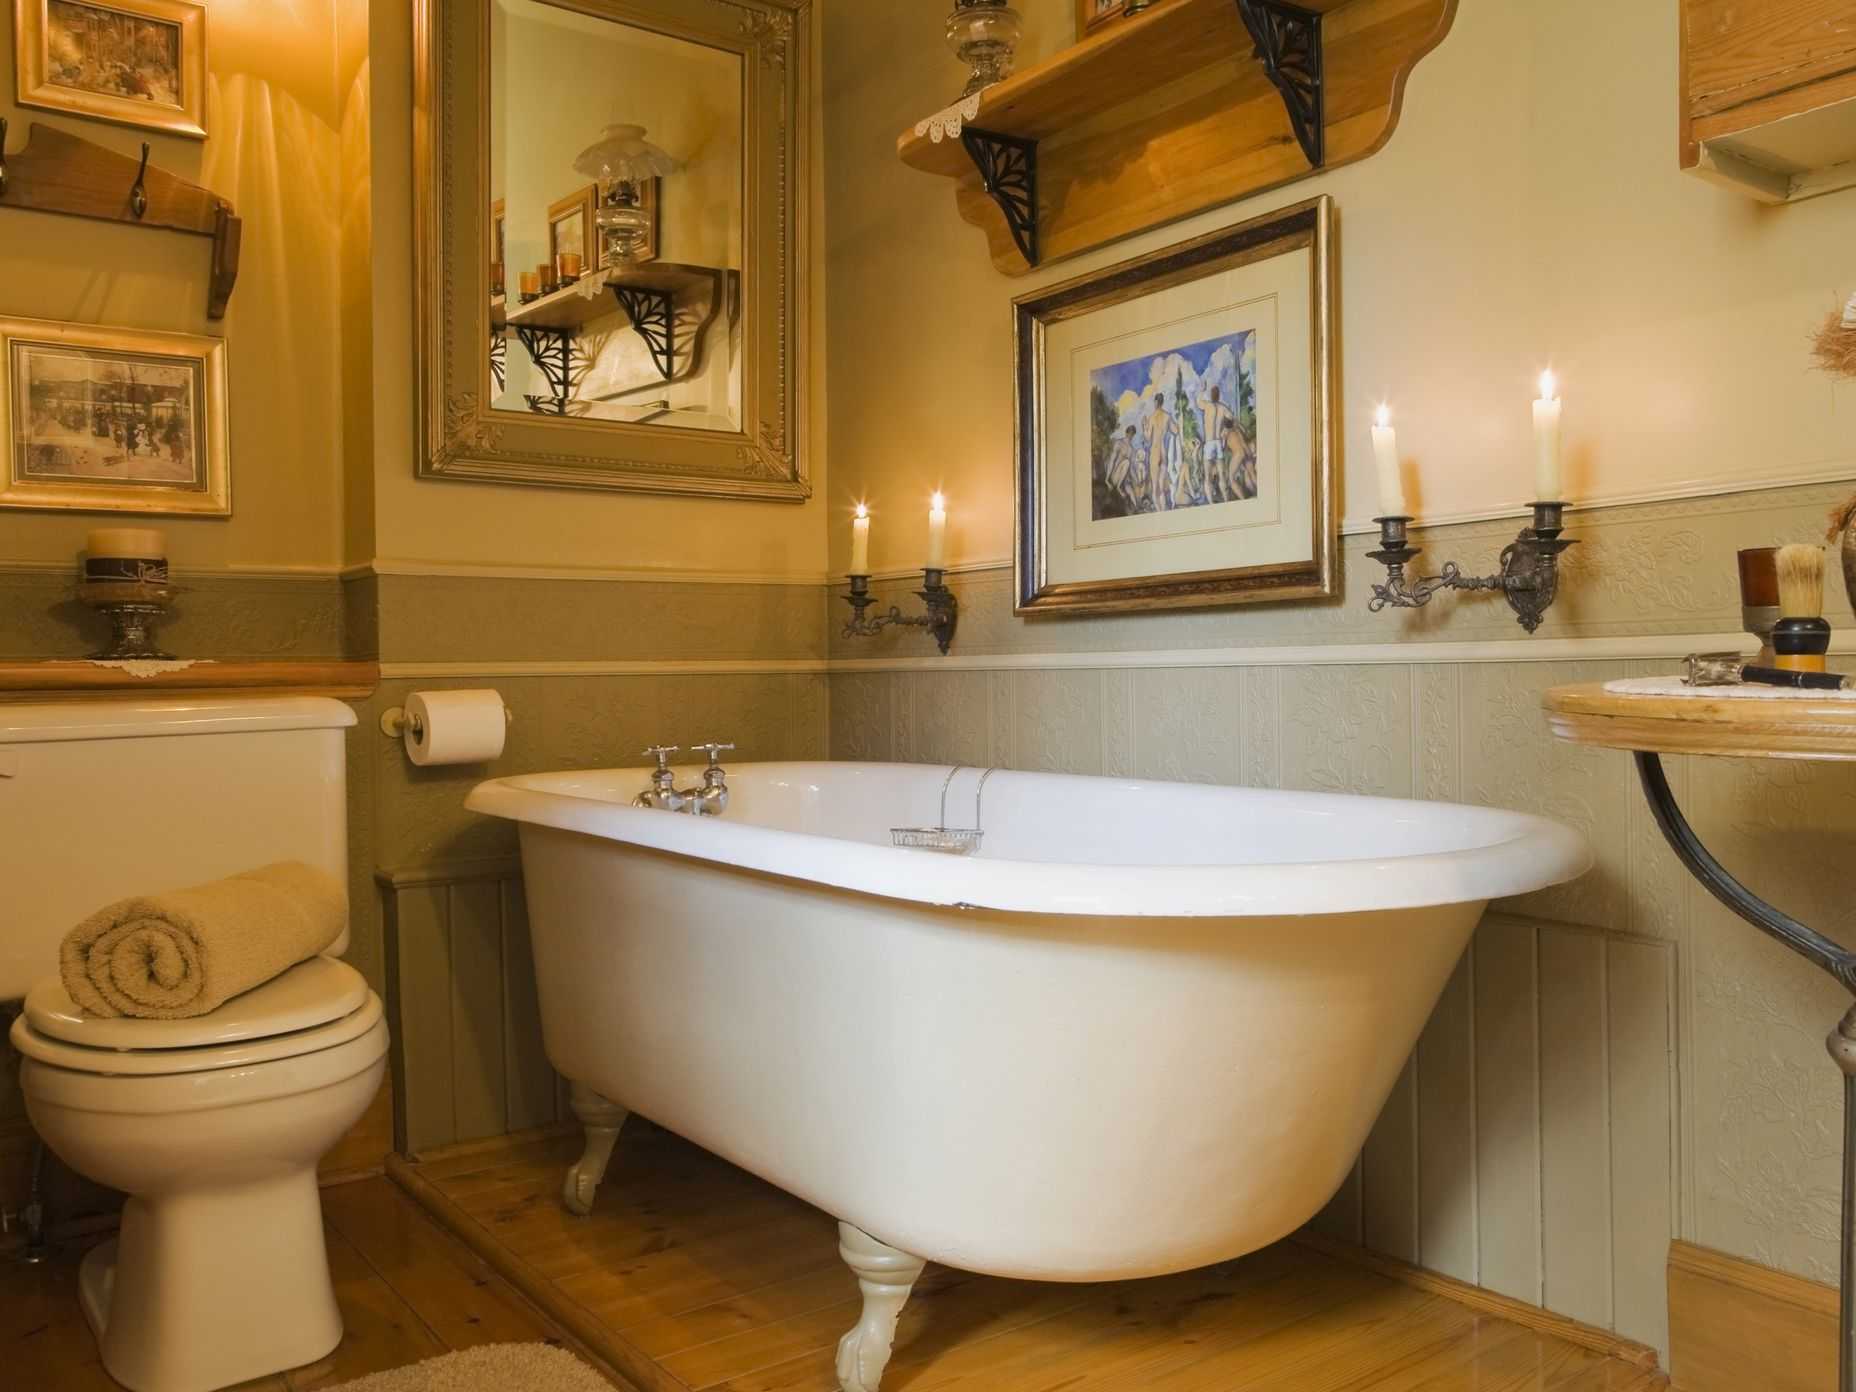 optimal usage of space and items for small bathroom ideas.htm staging the bathroom without breaking the bank  staging the bathroom without breaking